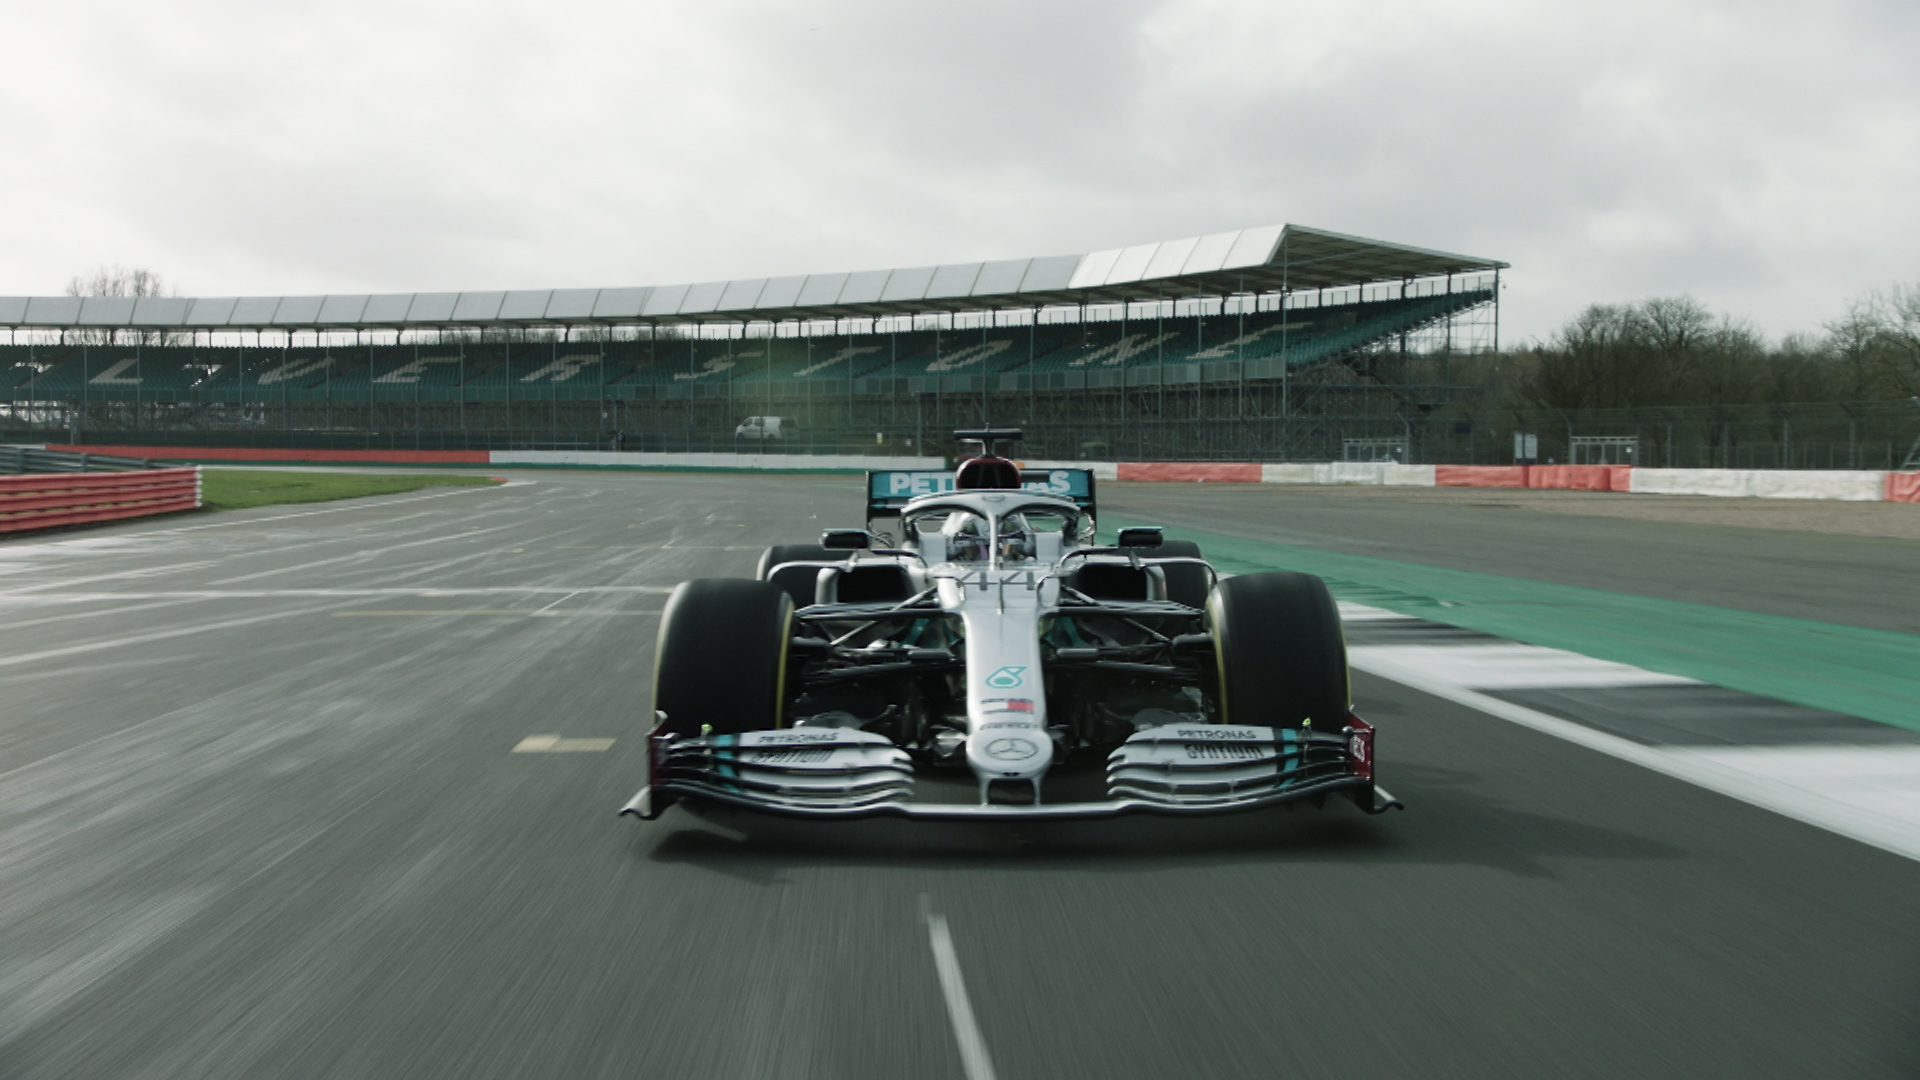 Mercedes shakedown 2020 car at Silverstone